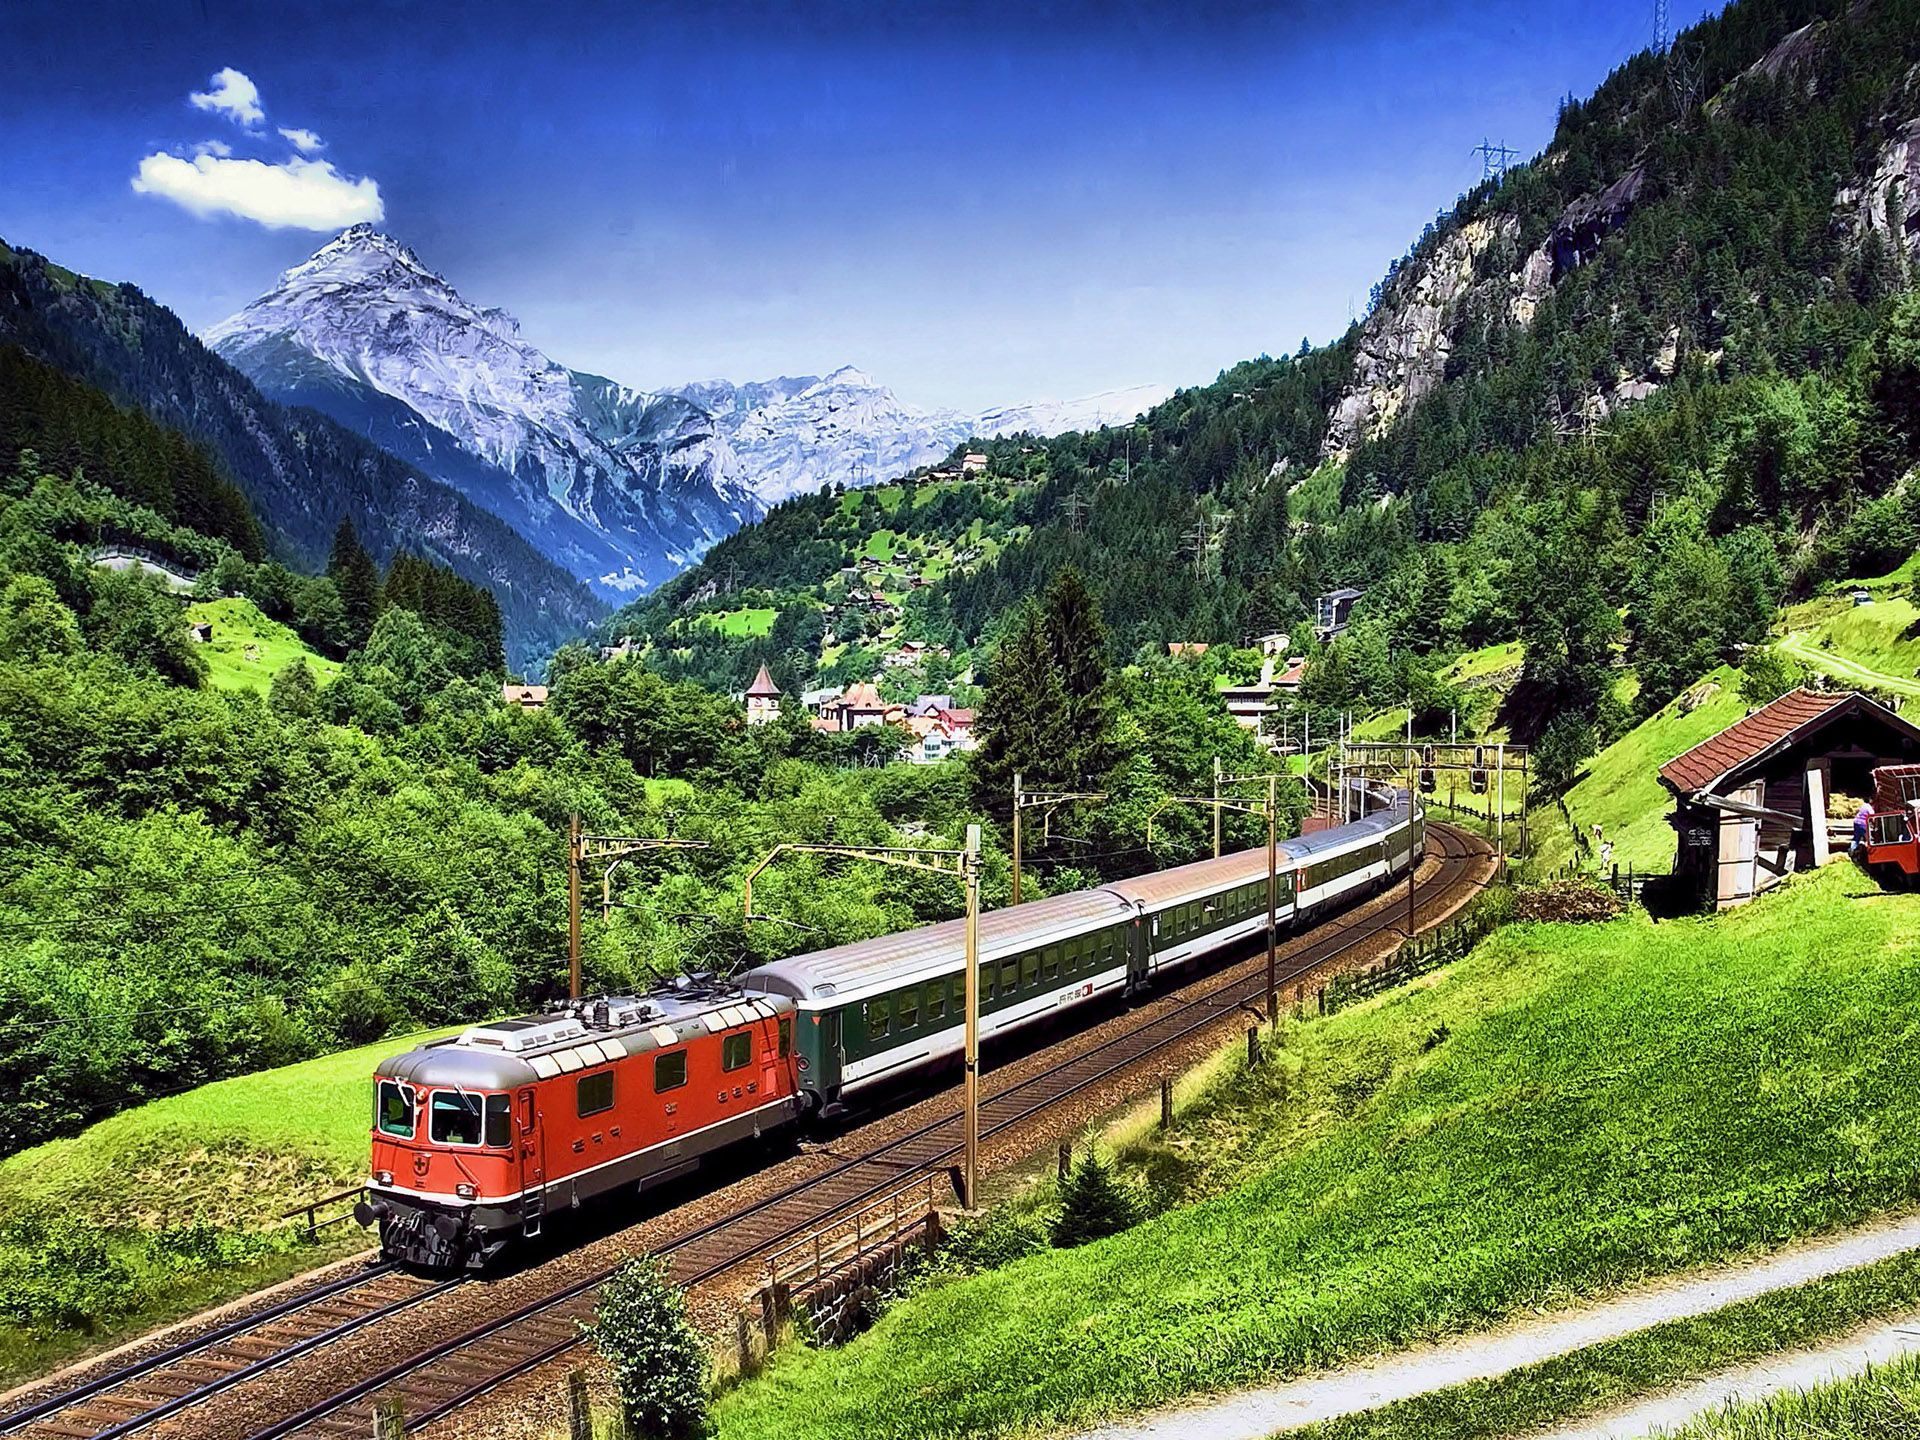 Japan Rail Pass - Using Train For A Better Journey